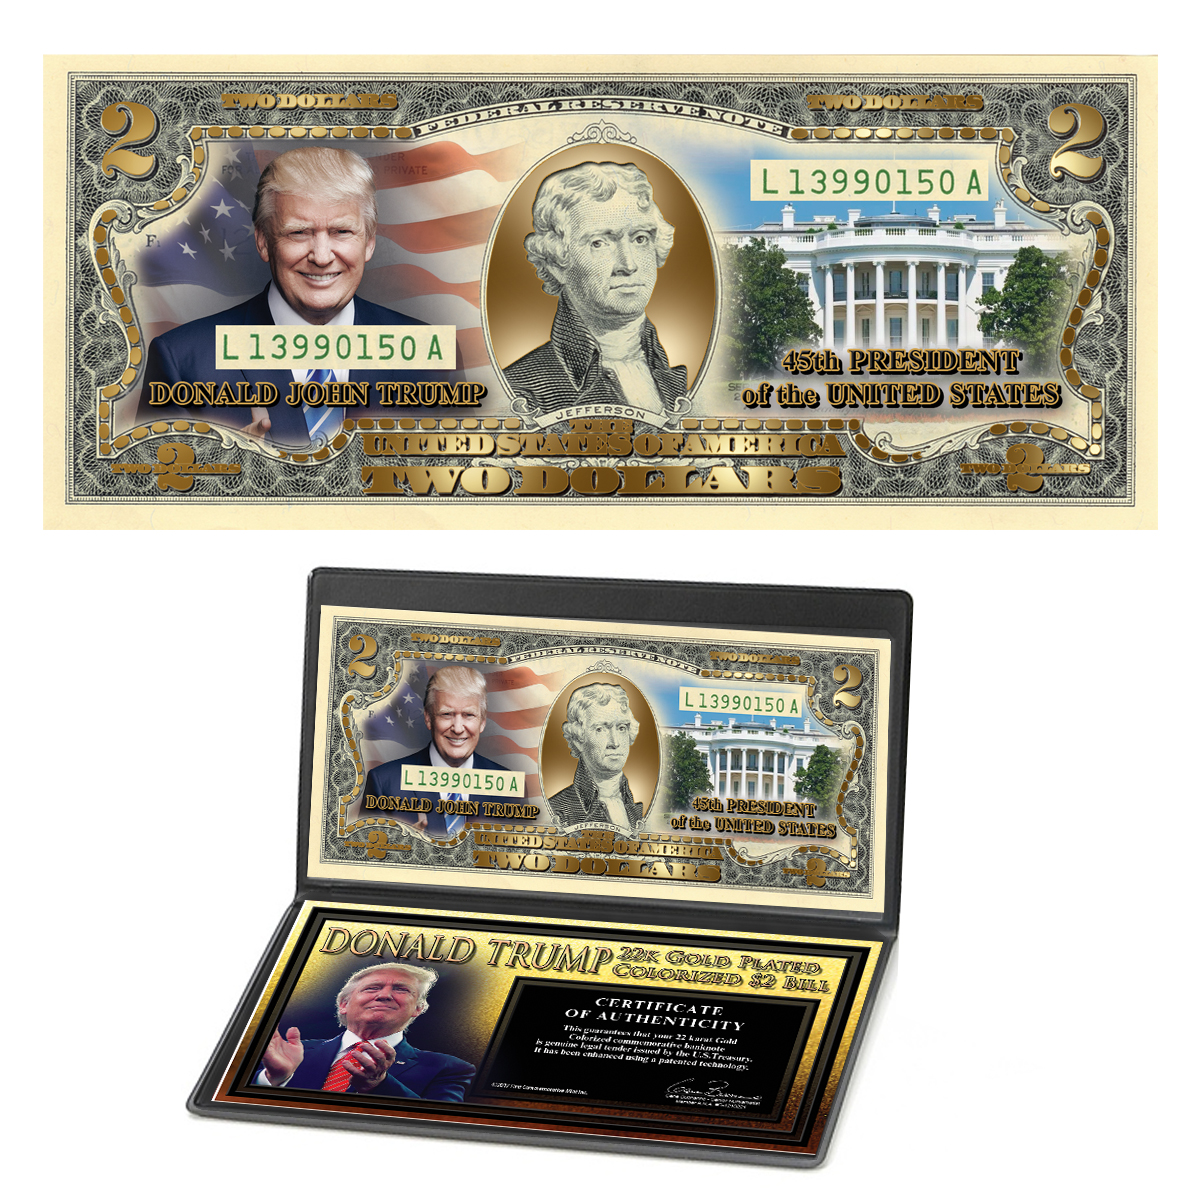 Donald Trump 45th President 22K Gold-Plated and Colorized $2 Bills